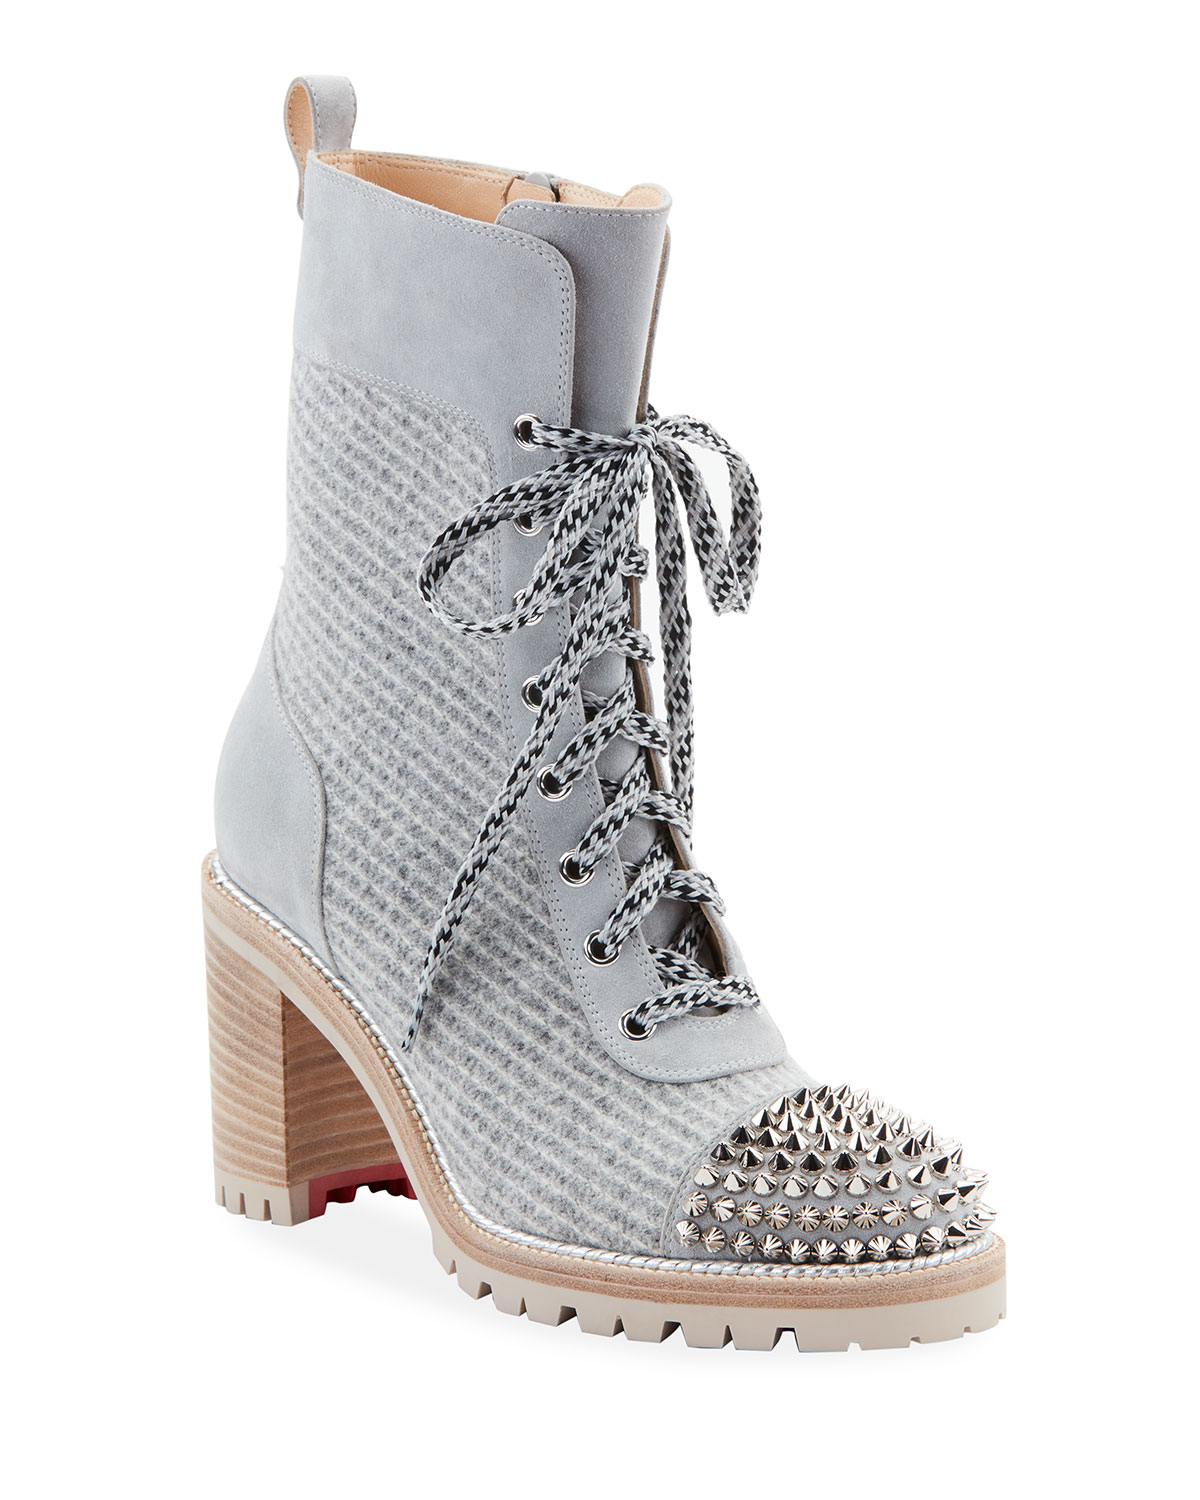 official photos 6e95e aca56 Ts Croc Wool And Leather Lace-Up Red Sole Booties in Gray